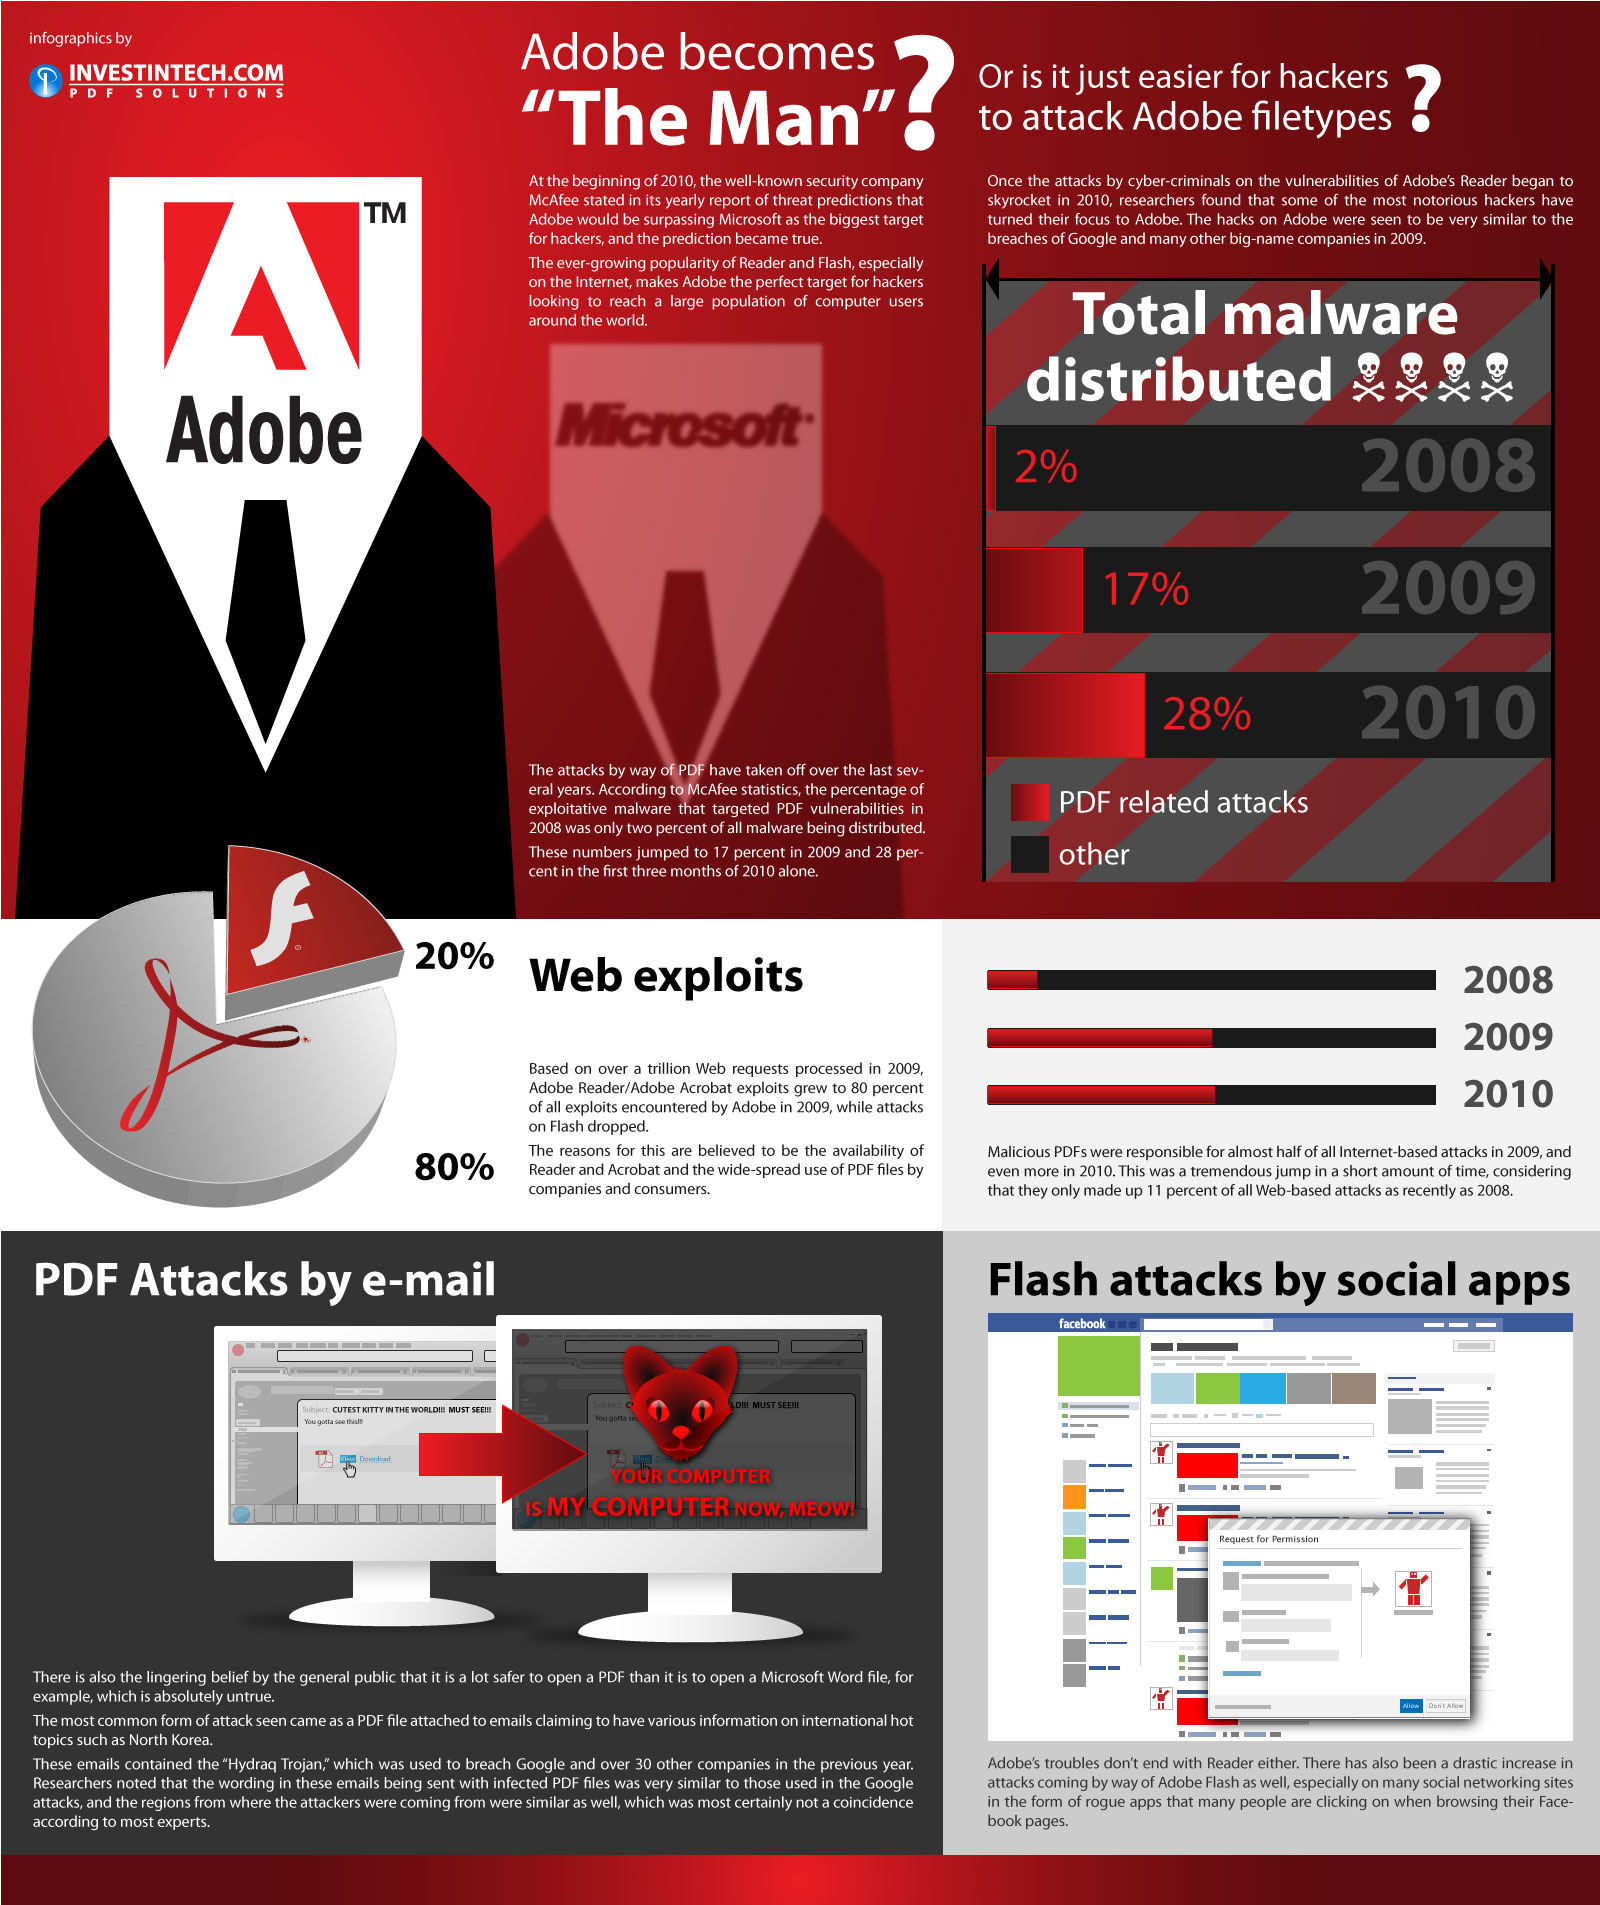 Adobe Filetype Hacker Malware Infographic